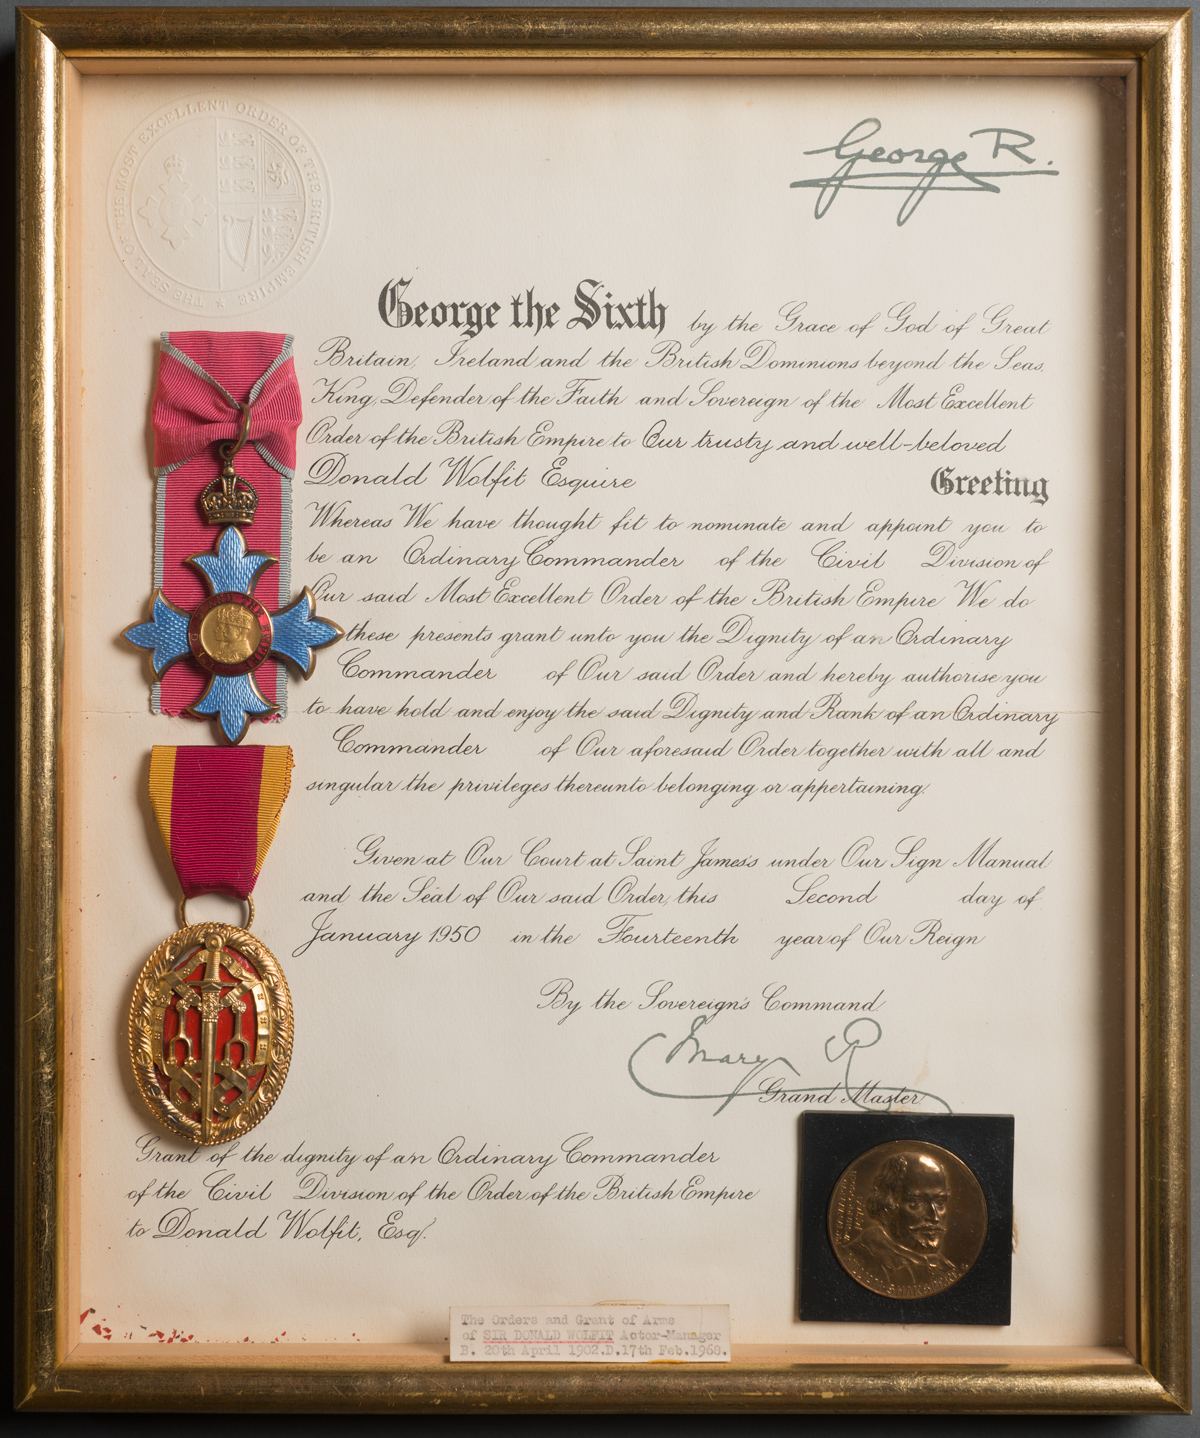 Donald Wolfit's certification as Commander of the British Empire, 1950 Mixed media Donald Wolfit Papers, Harry Ransom Center In recognition of his services to the theater and the nation, King George VI made Wolfit a Commander of the British Empire in 1950. Queen Elizabeth II knighted Wolfit in 1957.